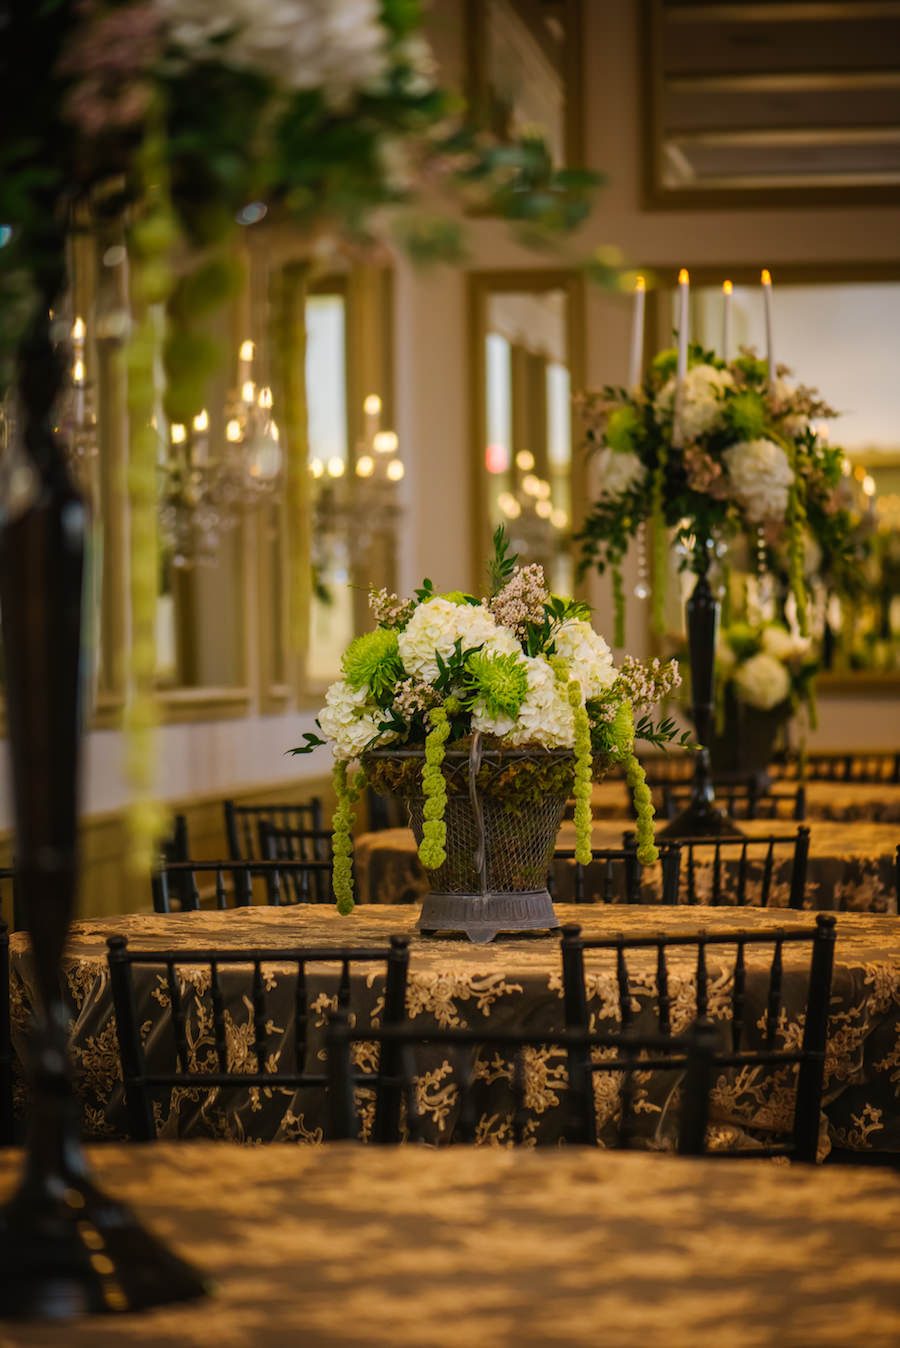 Cascading White and Green Hydrangea and Spider Flower Wedding Centerpiece in Dark Bronze Vase on Embroidered Gold Tablecloths | Tampa Wedding Florist Apple Blossoms Floral Designs